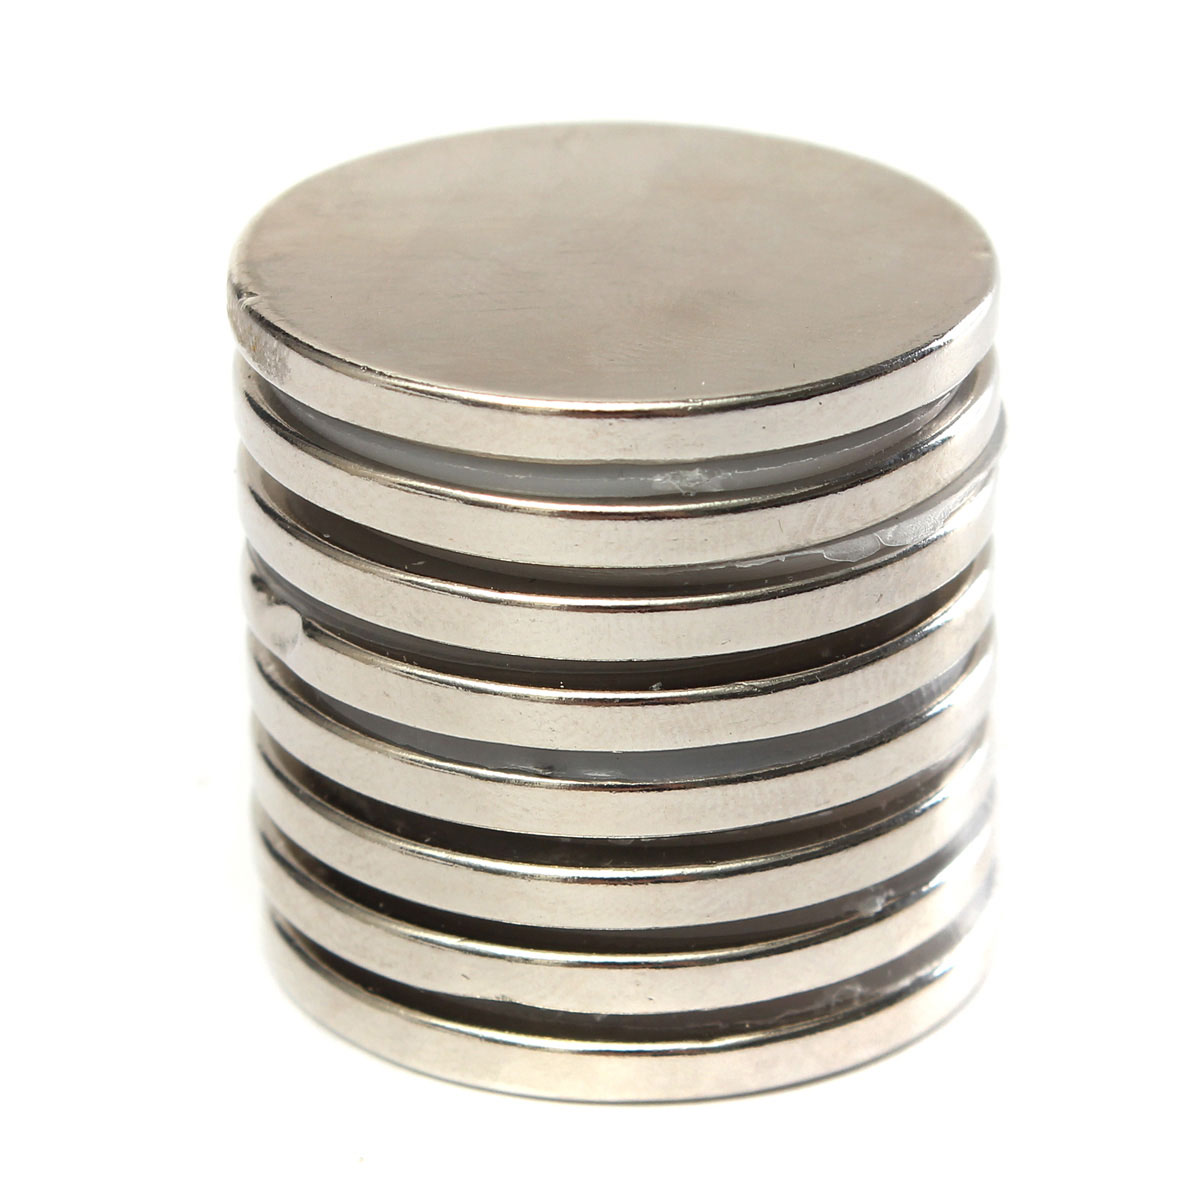 10pcs N52 30mmx3mm Strong Round Disc Magnets Rare Earth Neodymium Magnets